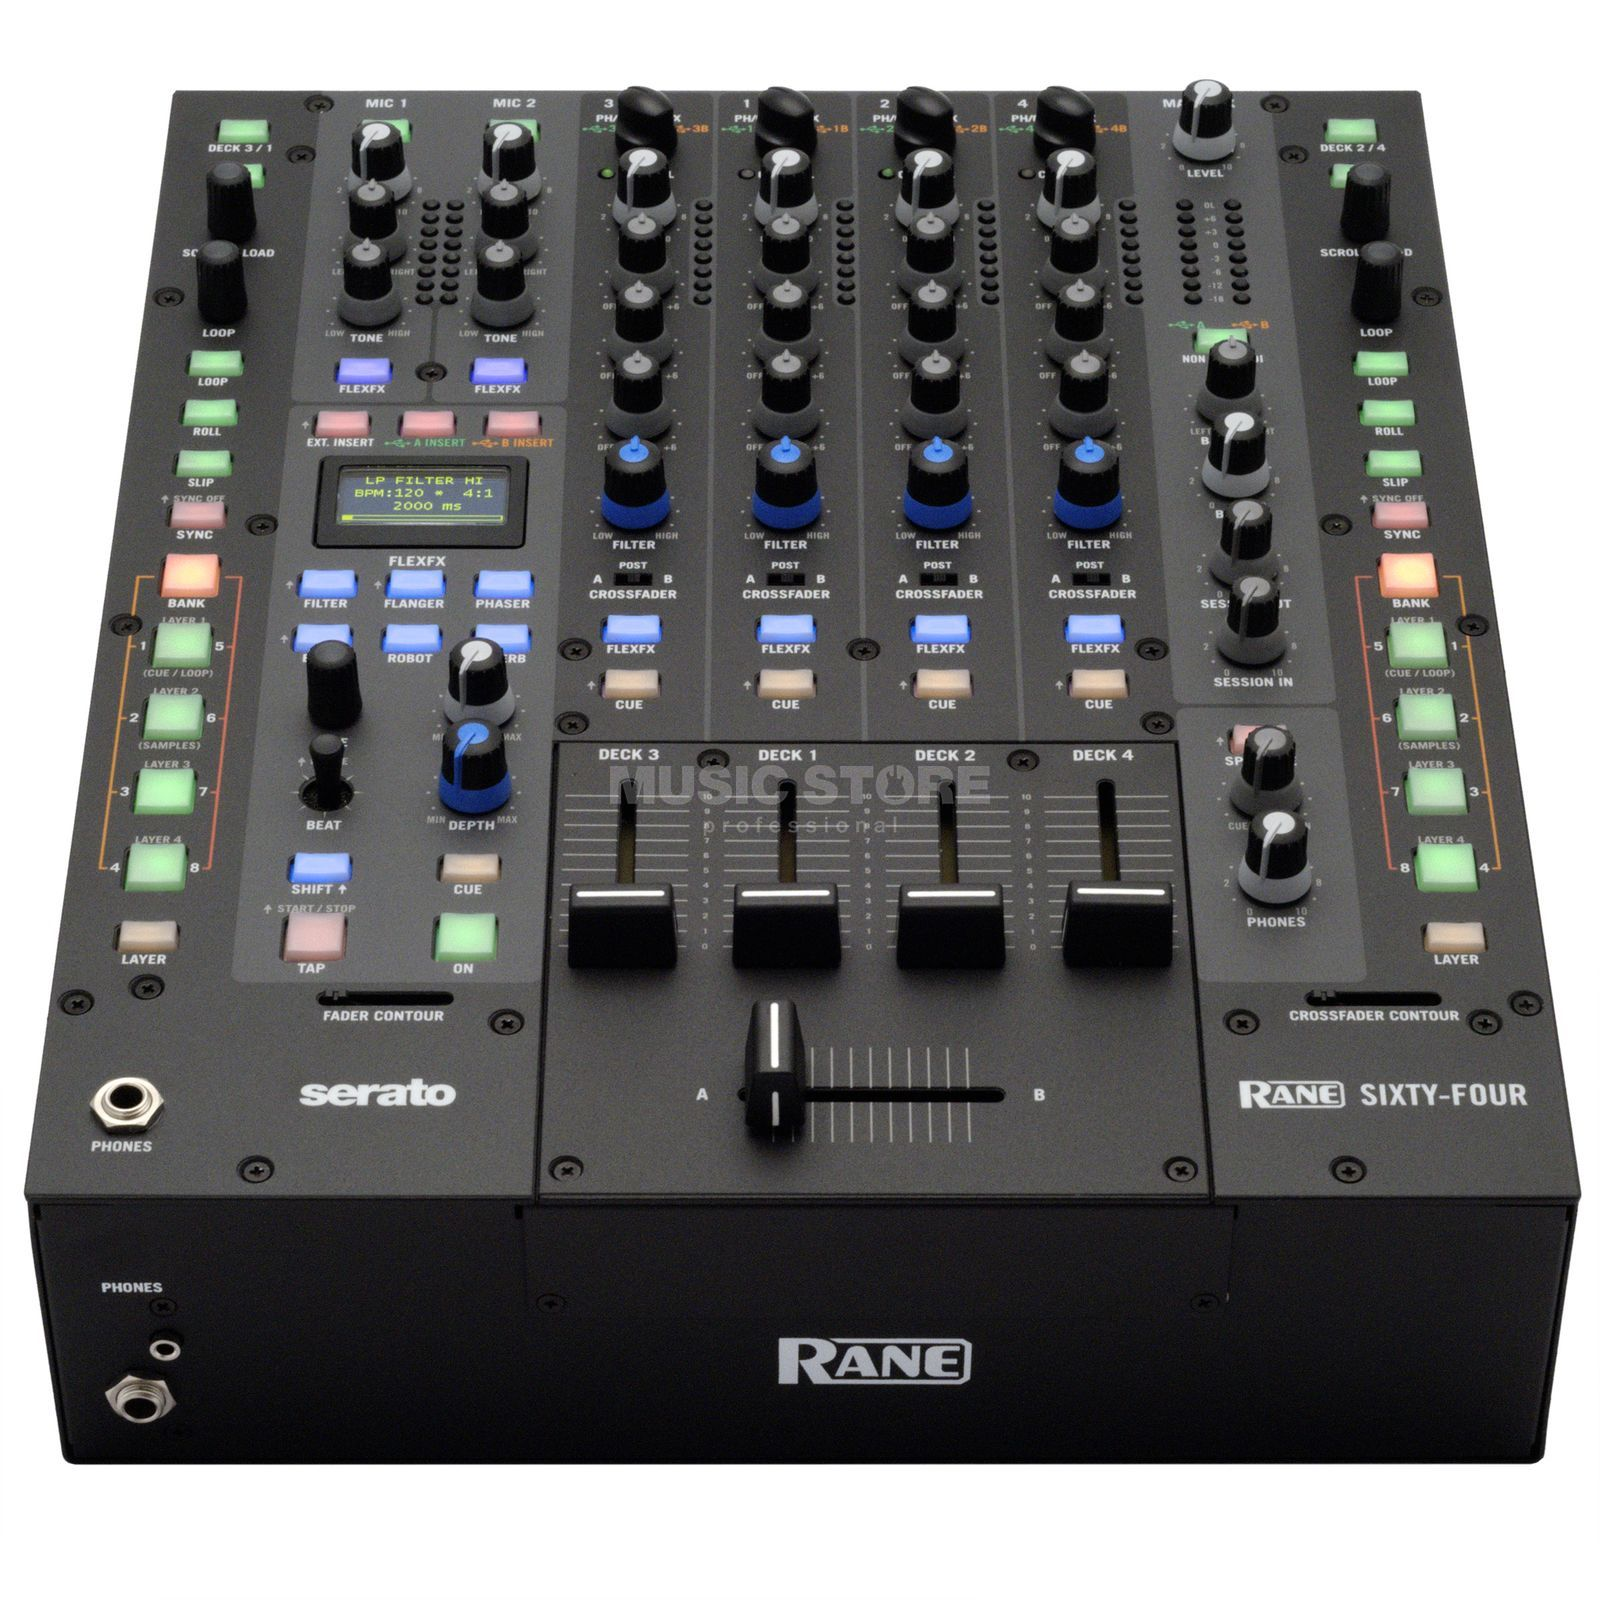 Rane SIXTY-FOUR 4-Channel Clubmixer incl. Serato DJ Software Immagine prodotto